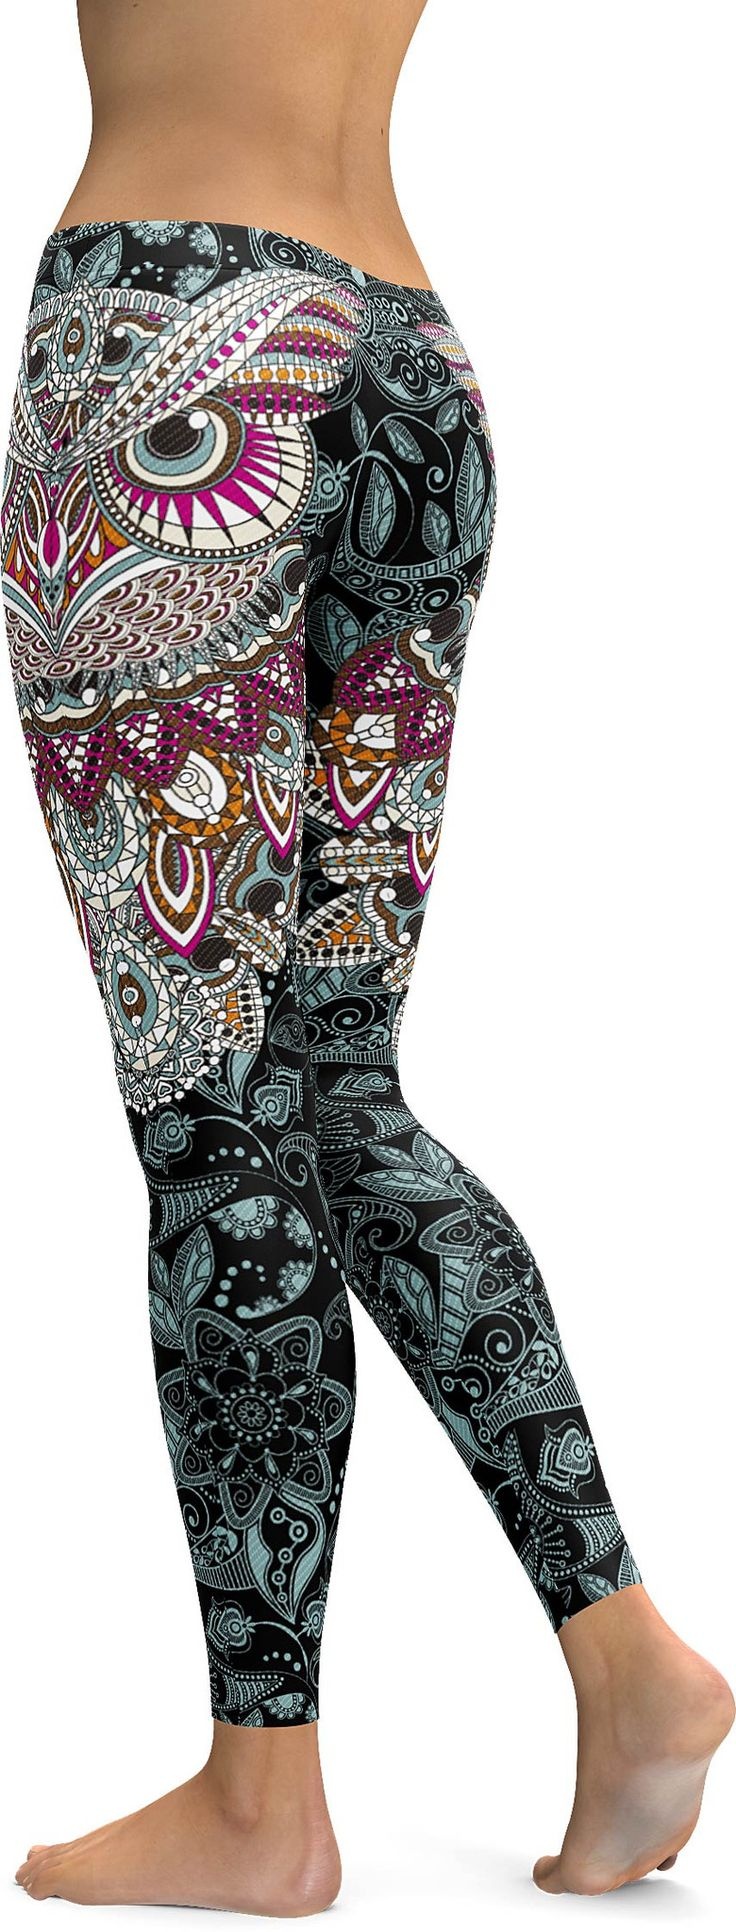 In case you need a versatile fashion piece that will carry you from casual daytime to dressier evening looks, you should definitely go for our Ornamental Owl Leggings. They feature a gorgeous all over